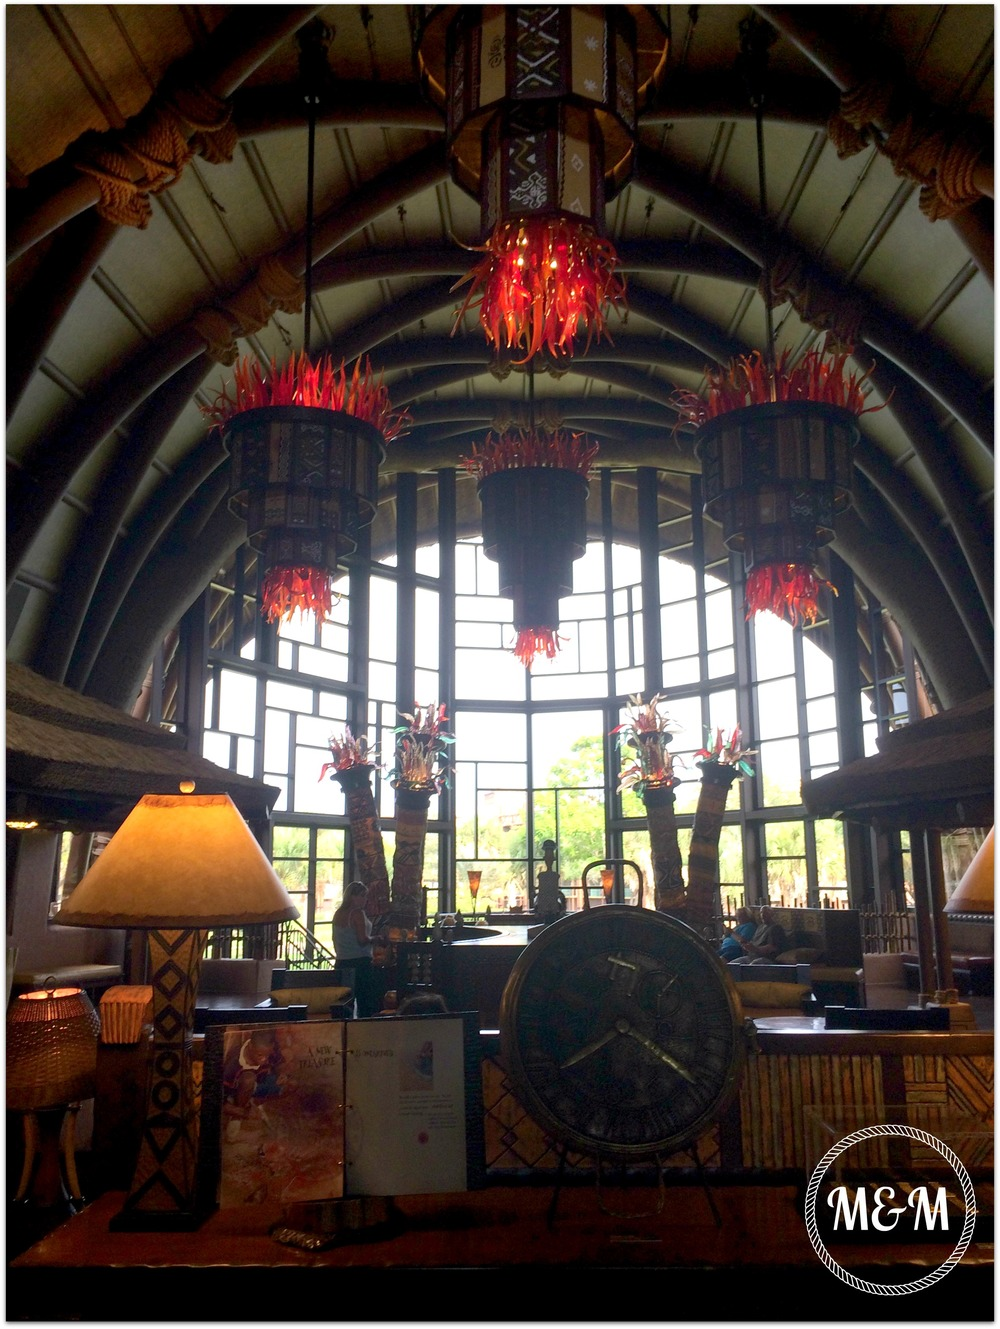 The lobby at Kidani Village, Animal Kingdom Lodge